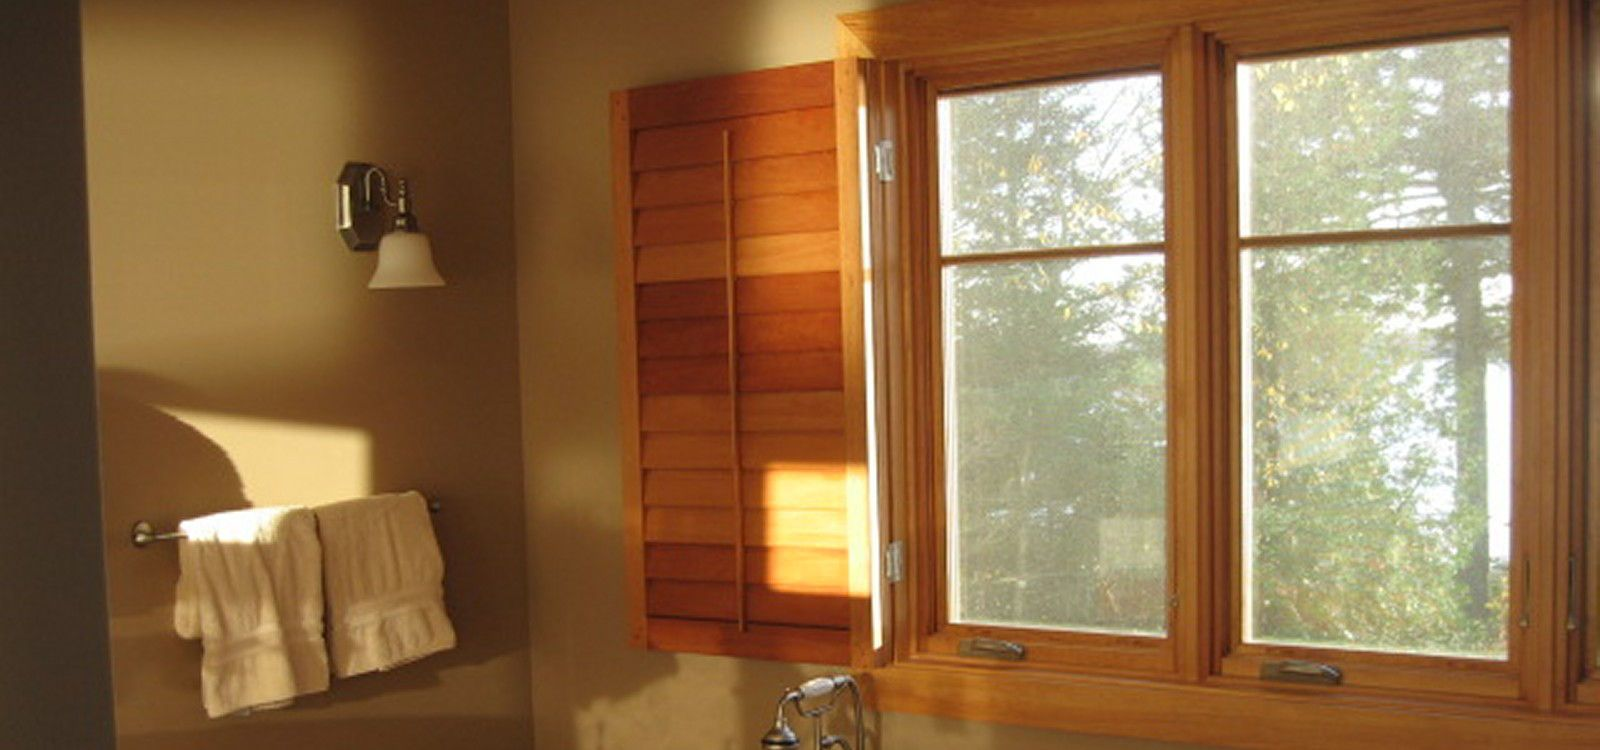 ... Operable Louvered Bathroom Shutters